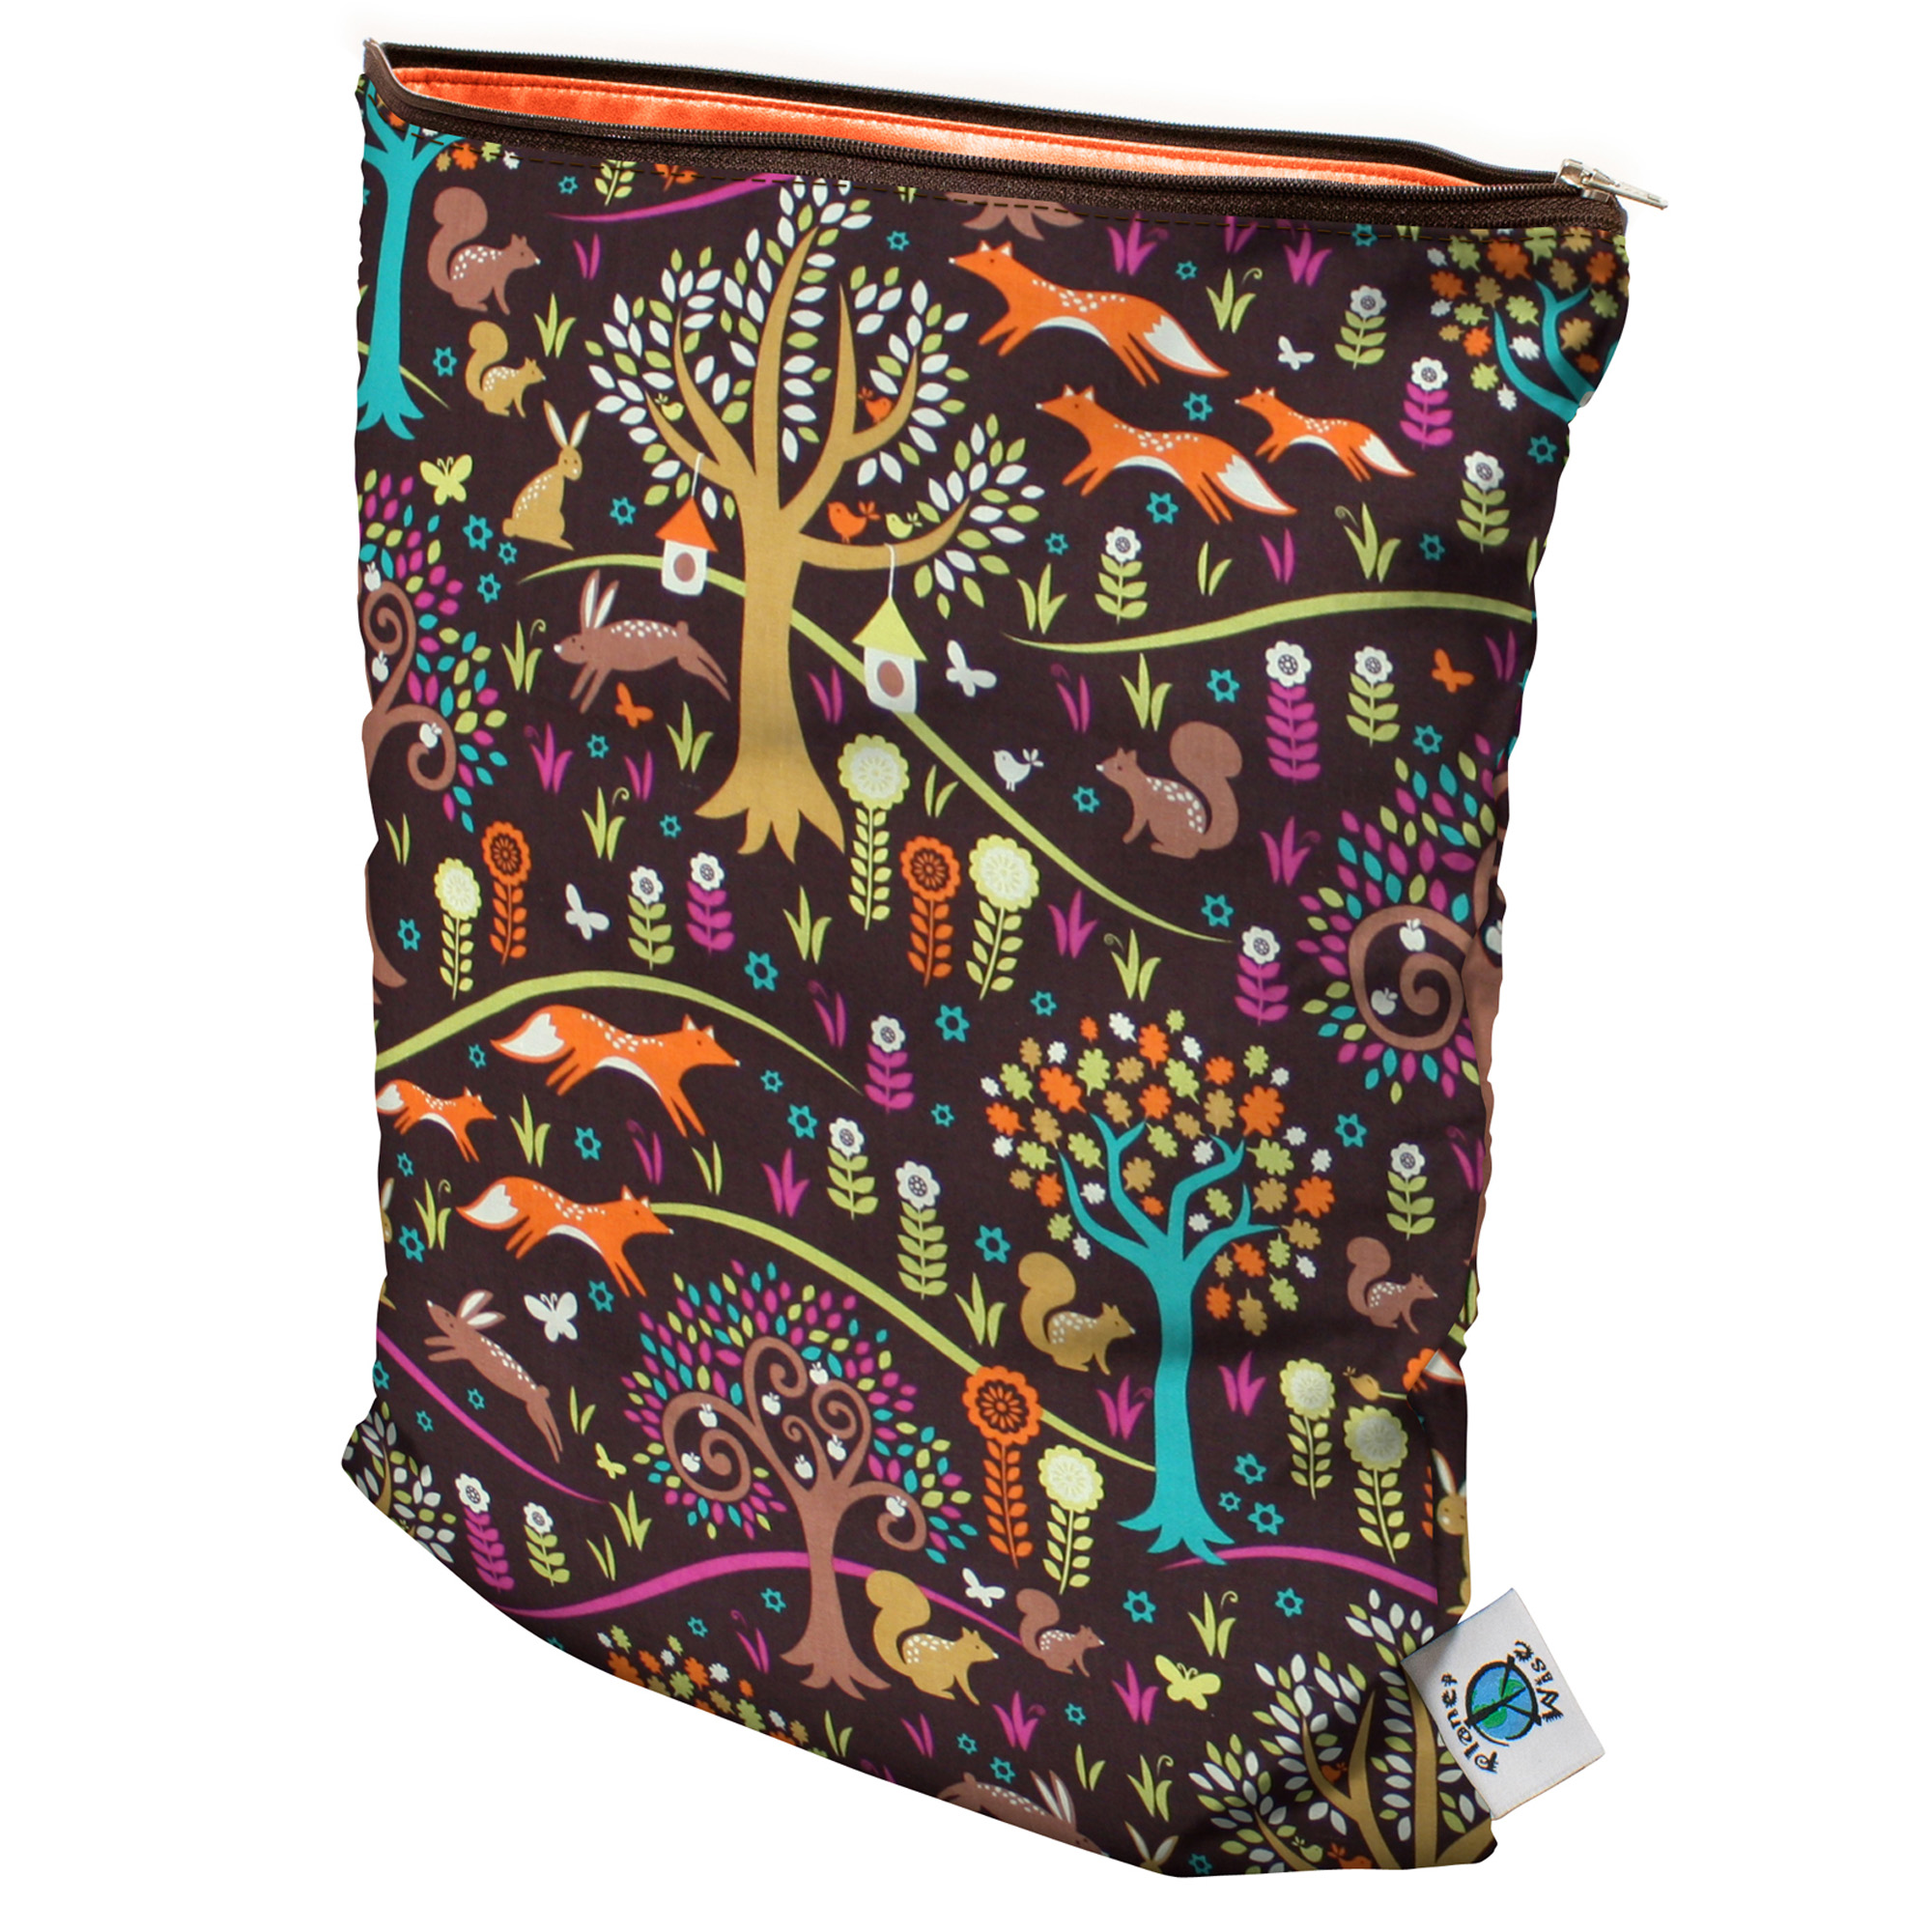 Planet Wise Medium Wet Bag, Jewel Woods